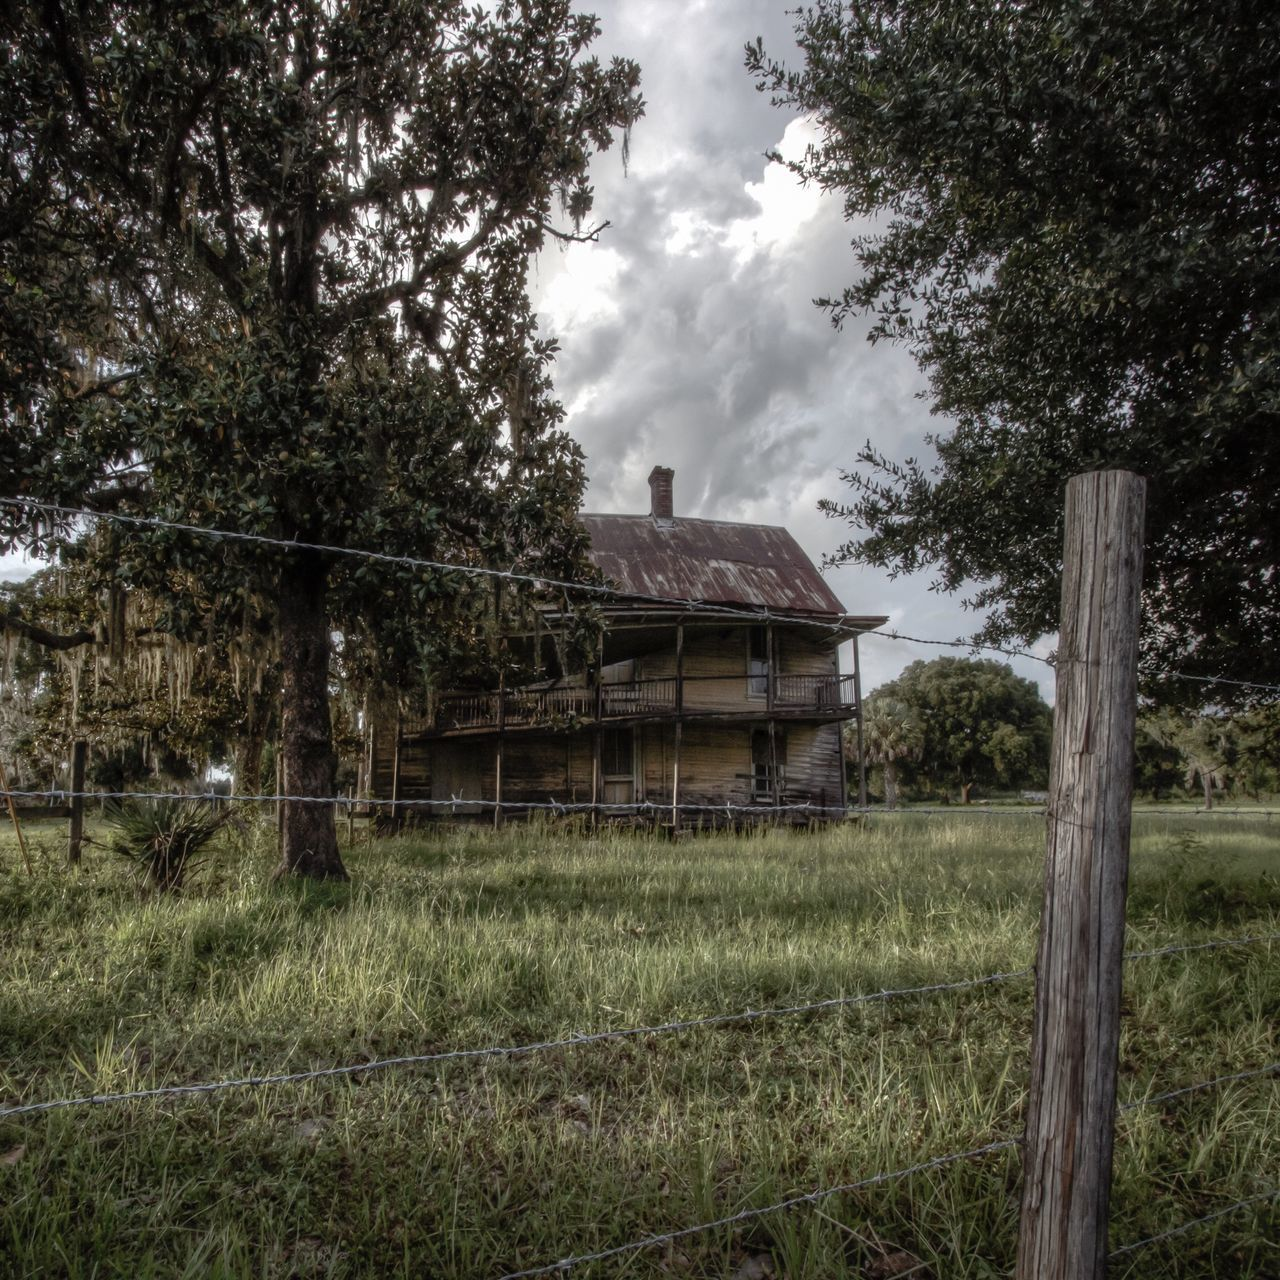 tree, architecture, built structure, house, building exterior, no people, grass, day, abandoned, growth, field, outdoors, sky, nature